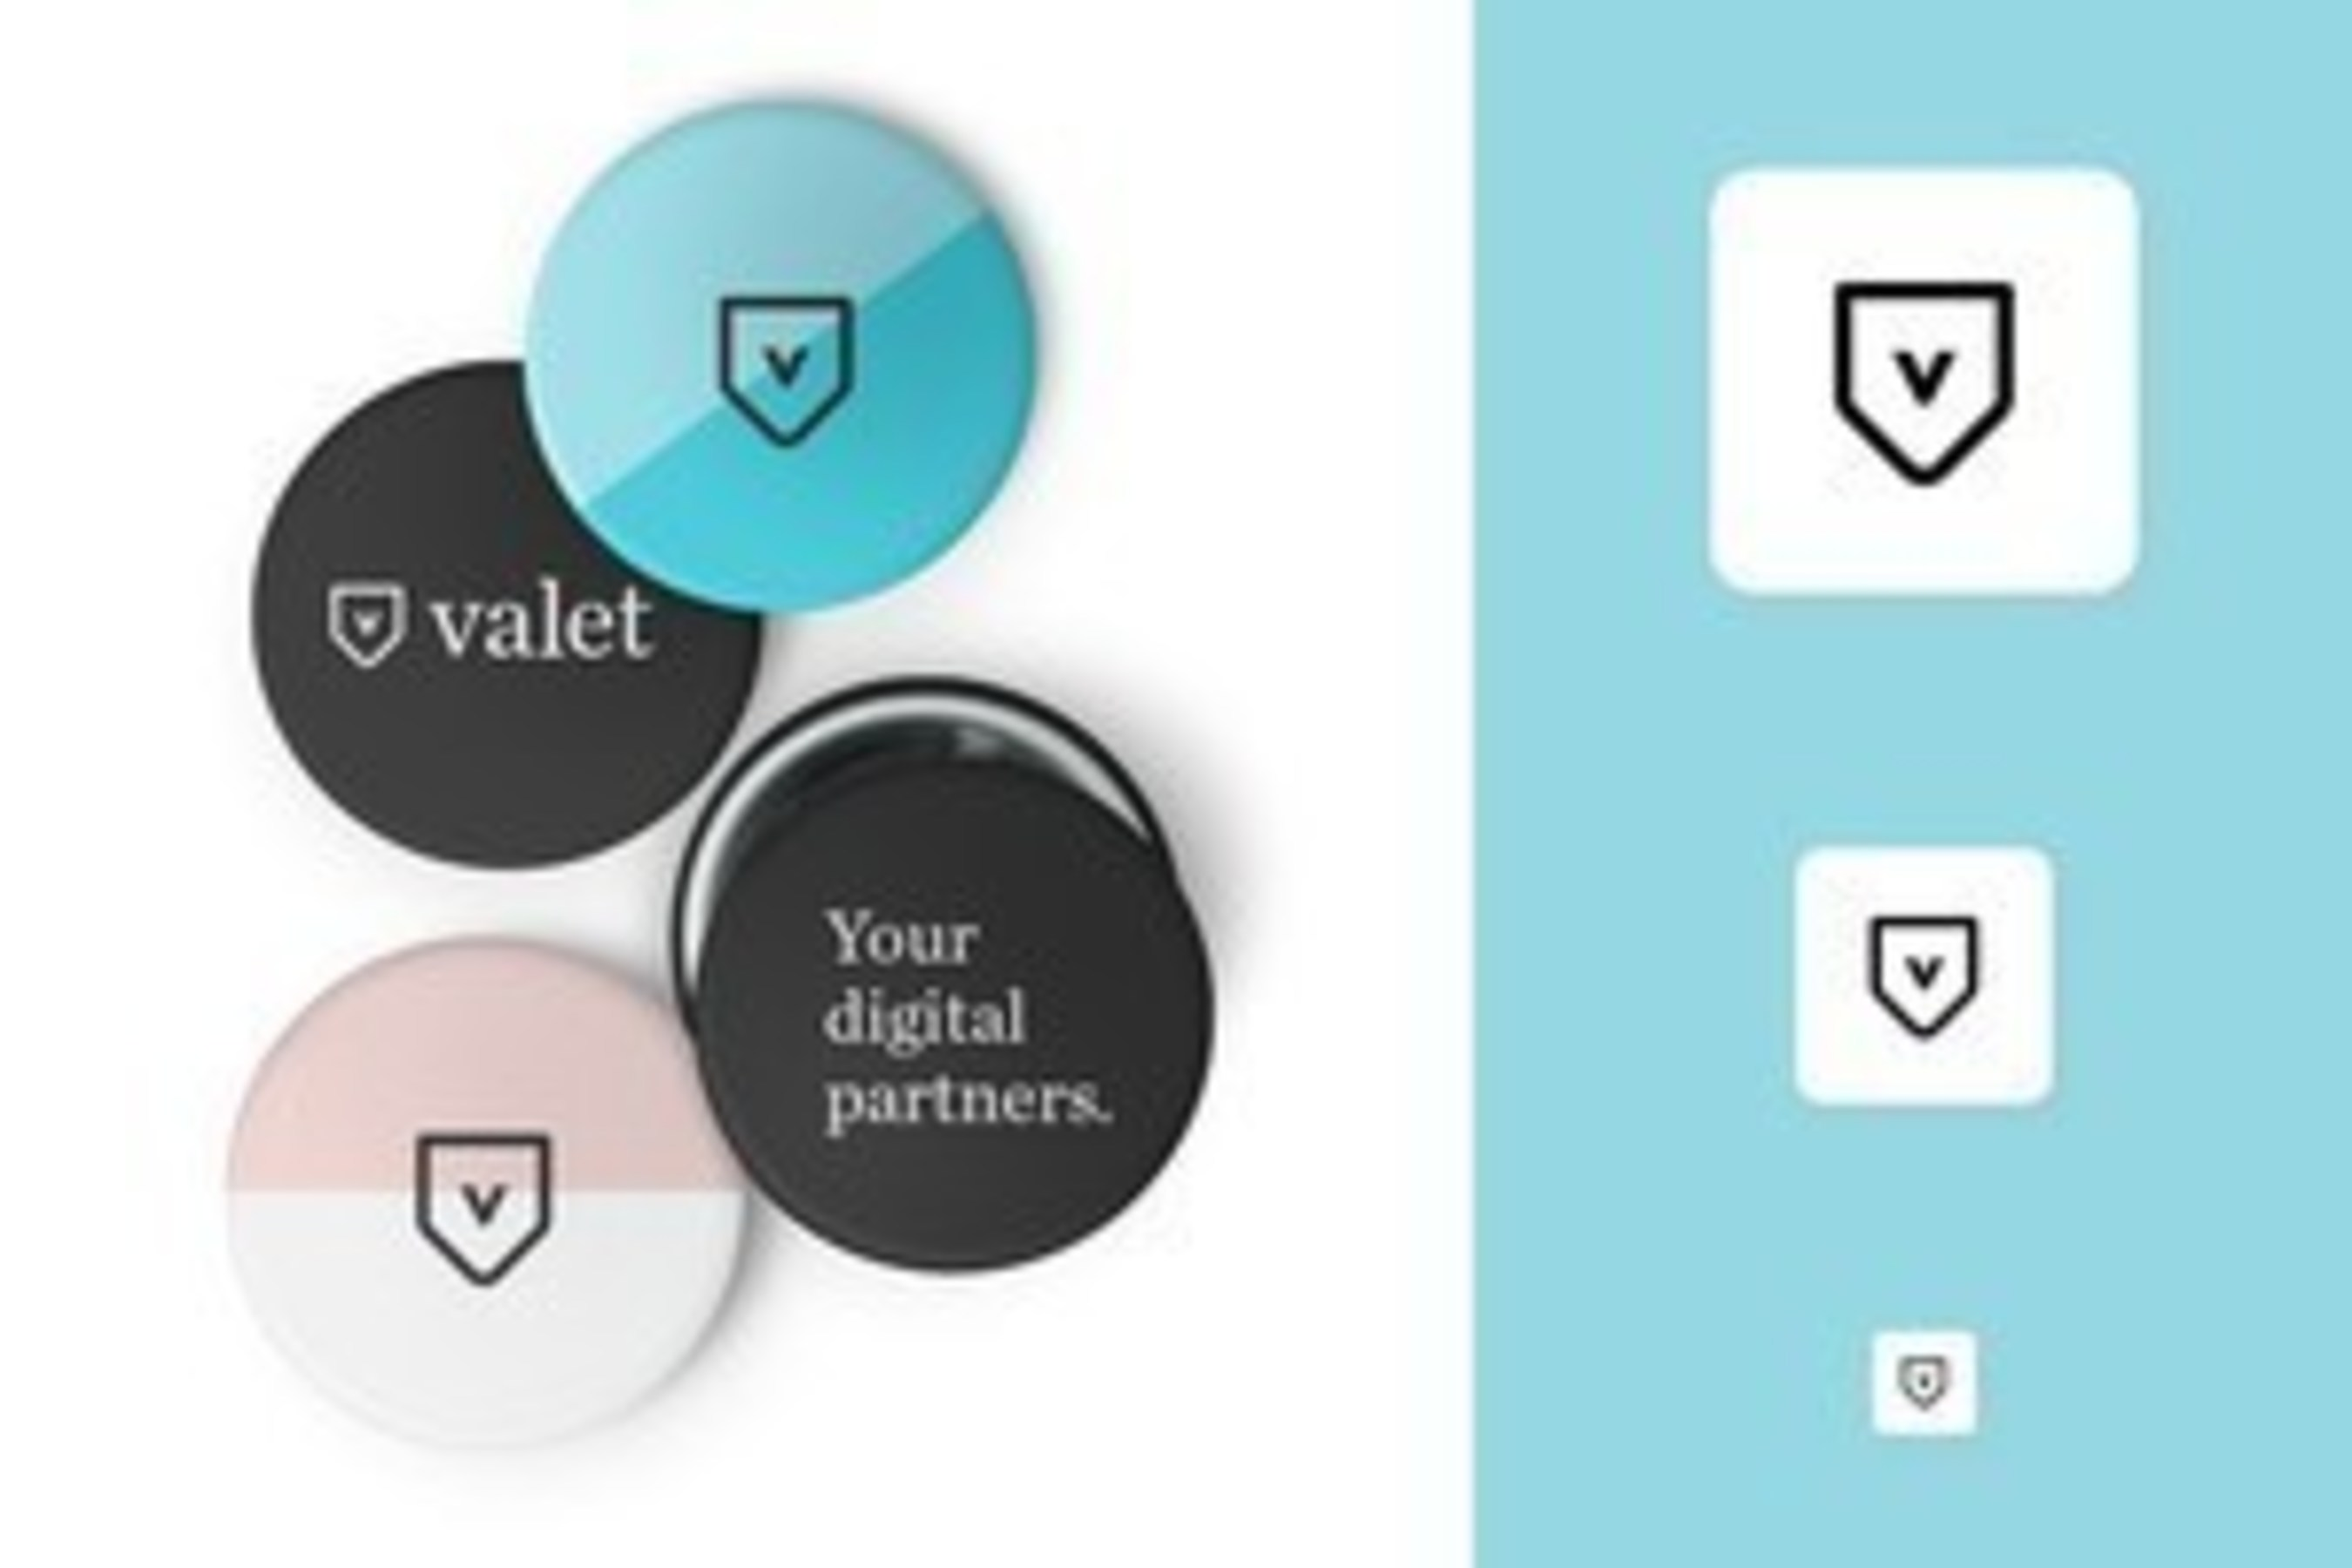 Valet.io Unveils New Logo & Website, Revealing a Wide Range of Capabilities